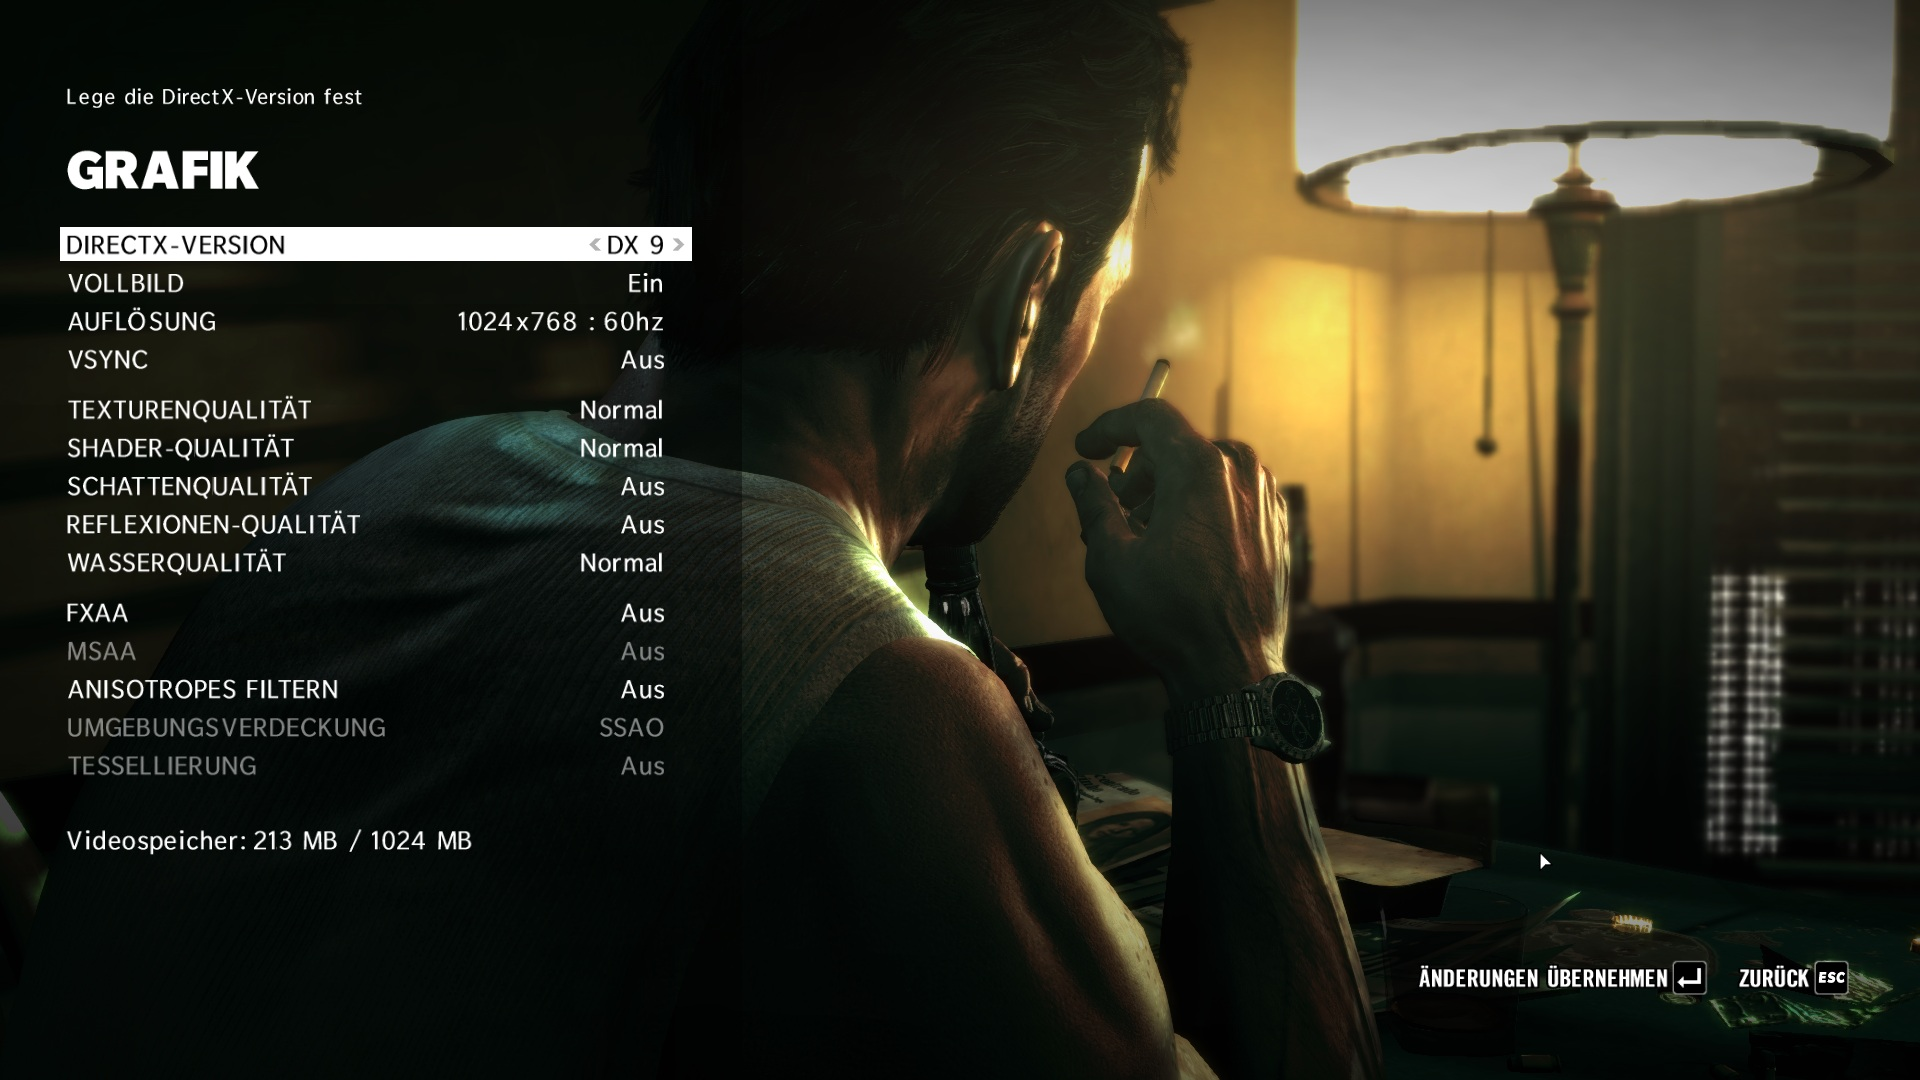 Max Payne 3 Benchmarked - NotebookCheck.net Reviews